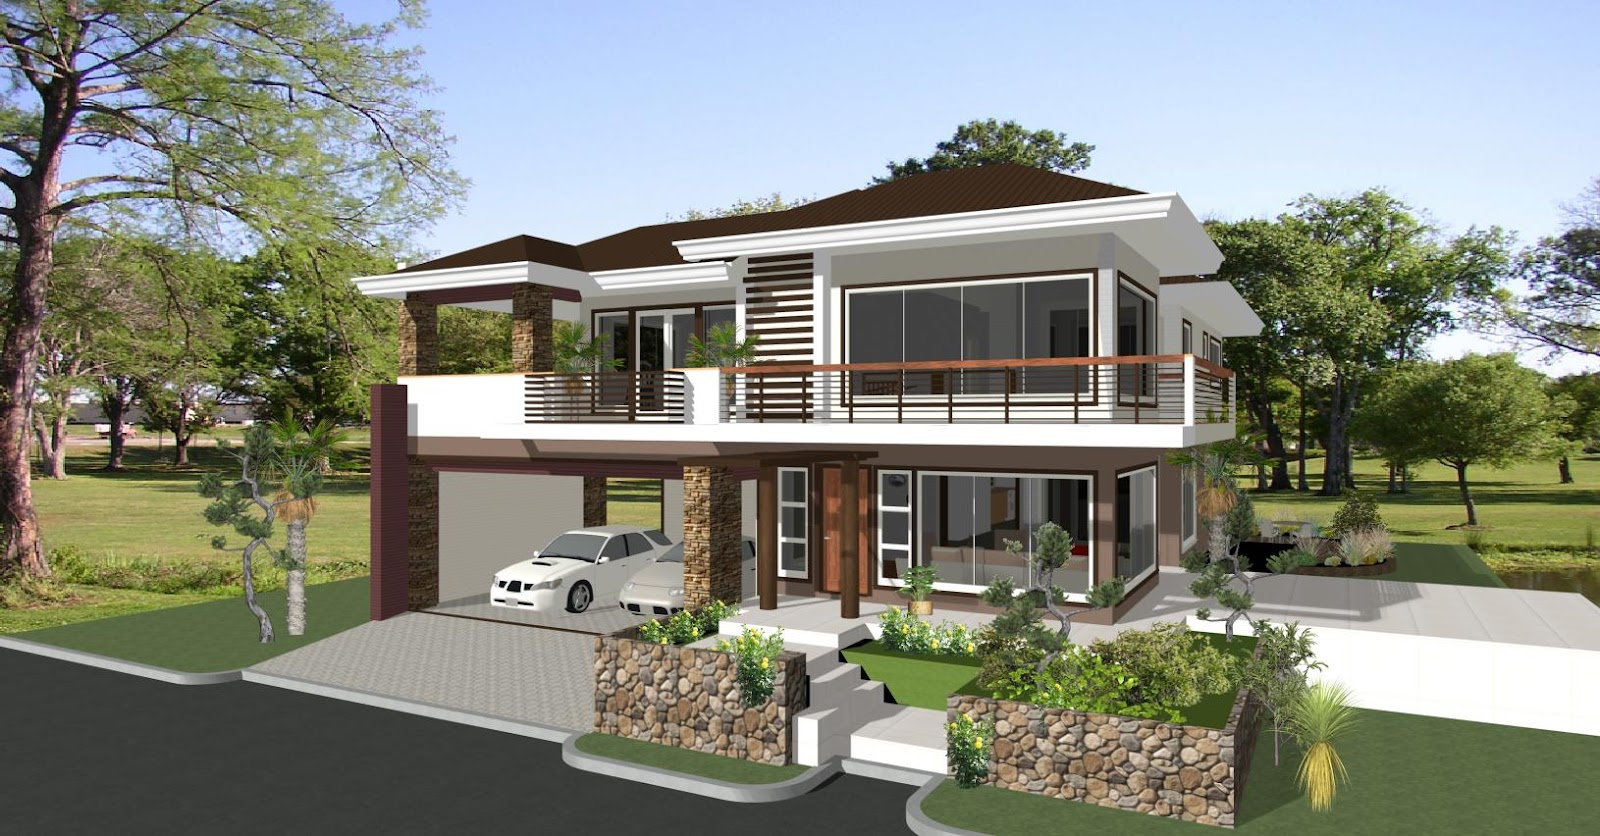 design luxury homes on 750x499 home plans at dream house 1600x1067. beautiful ideas. Home Design Ideas